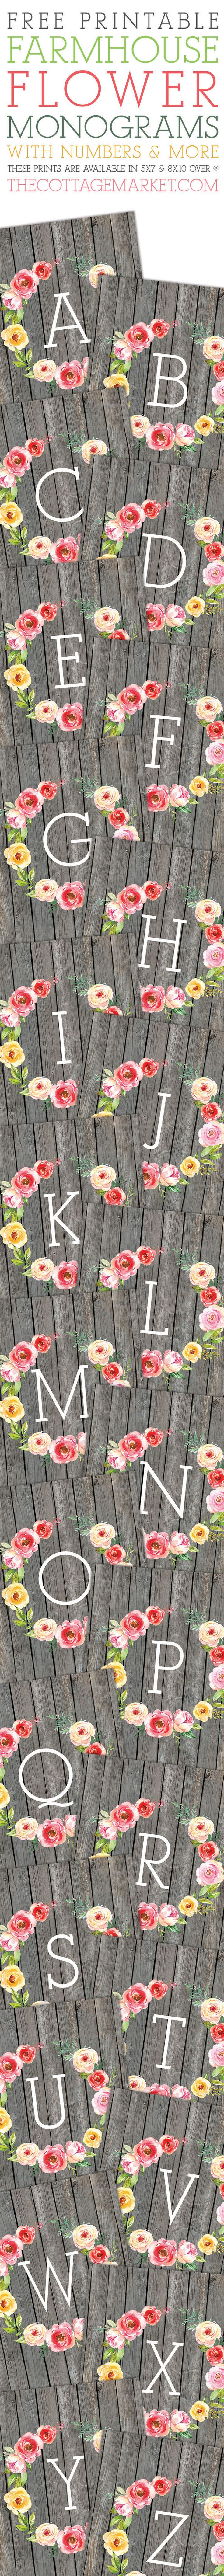 Free Printable Farmhouse Flower Monograms and More!